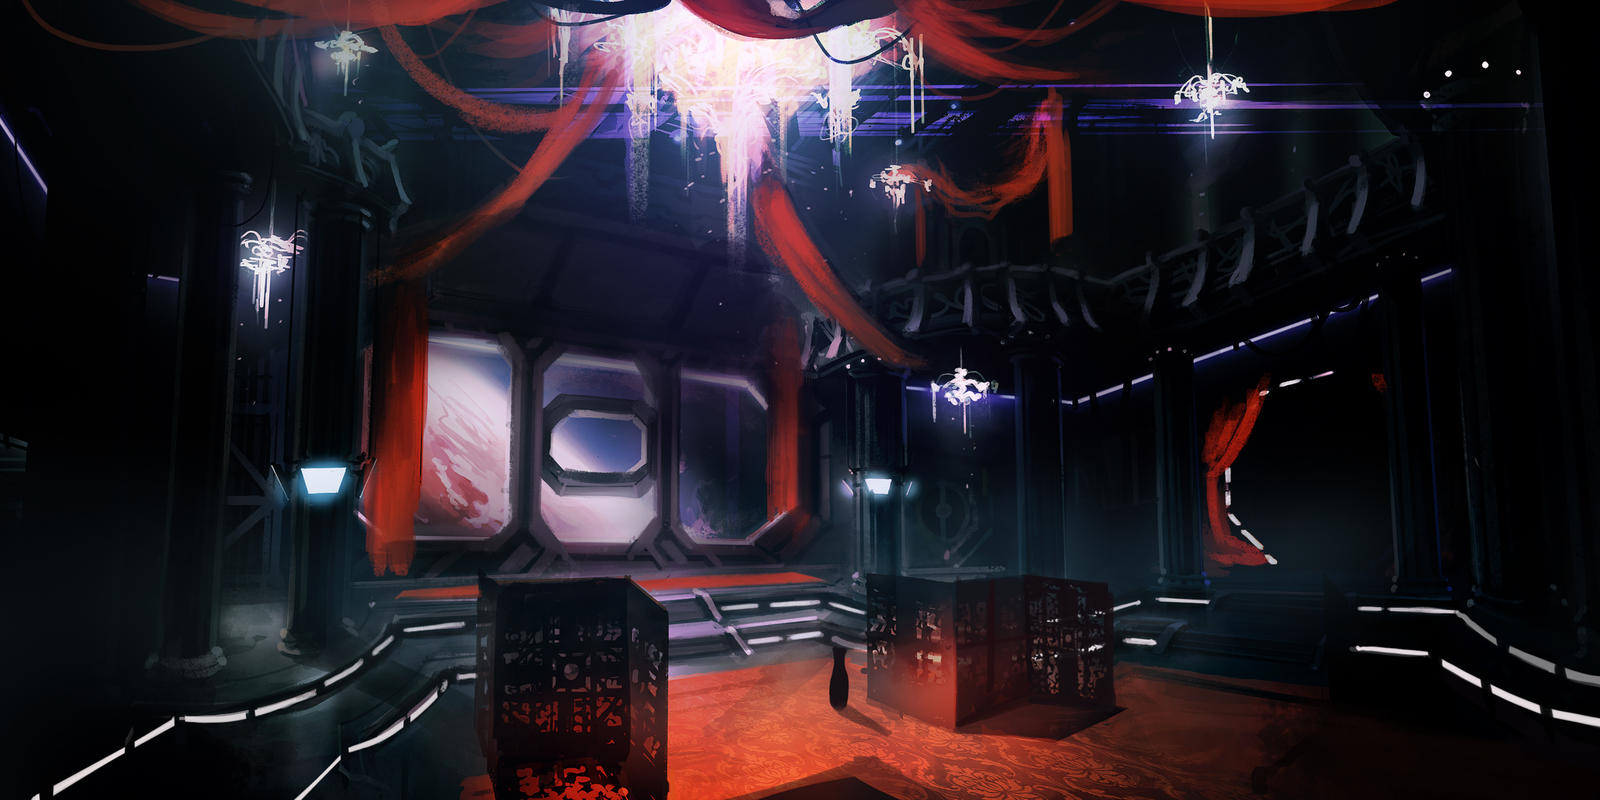 space club (needs crit) by thatnickid